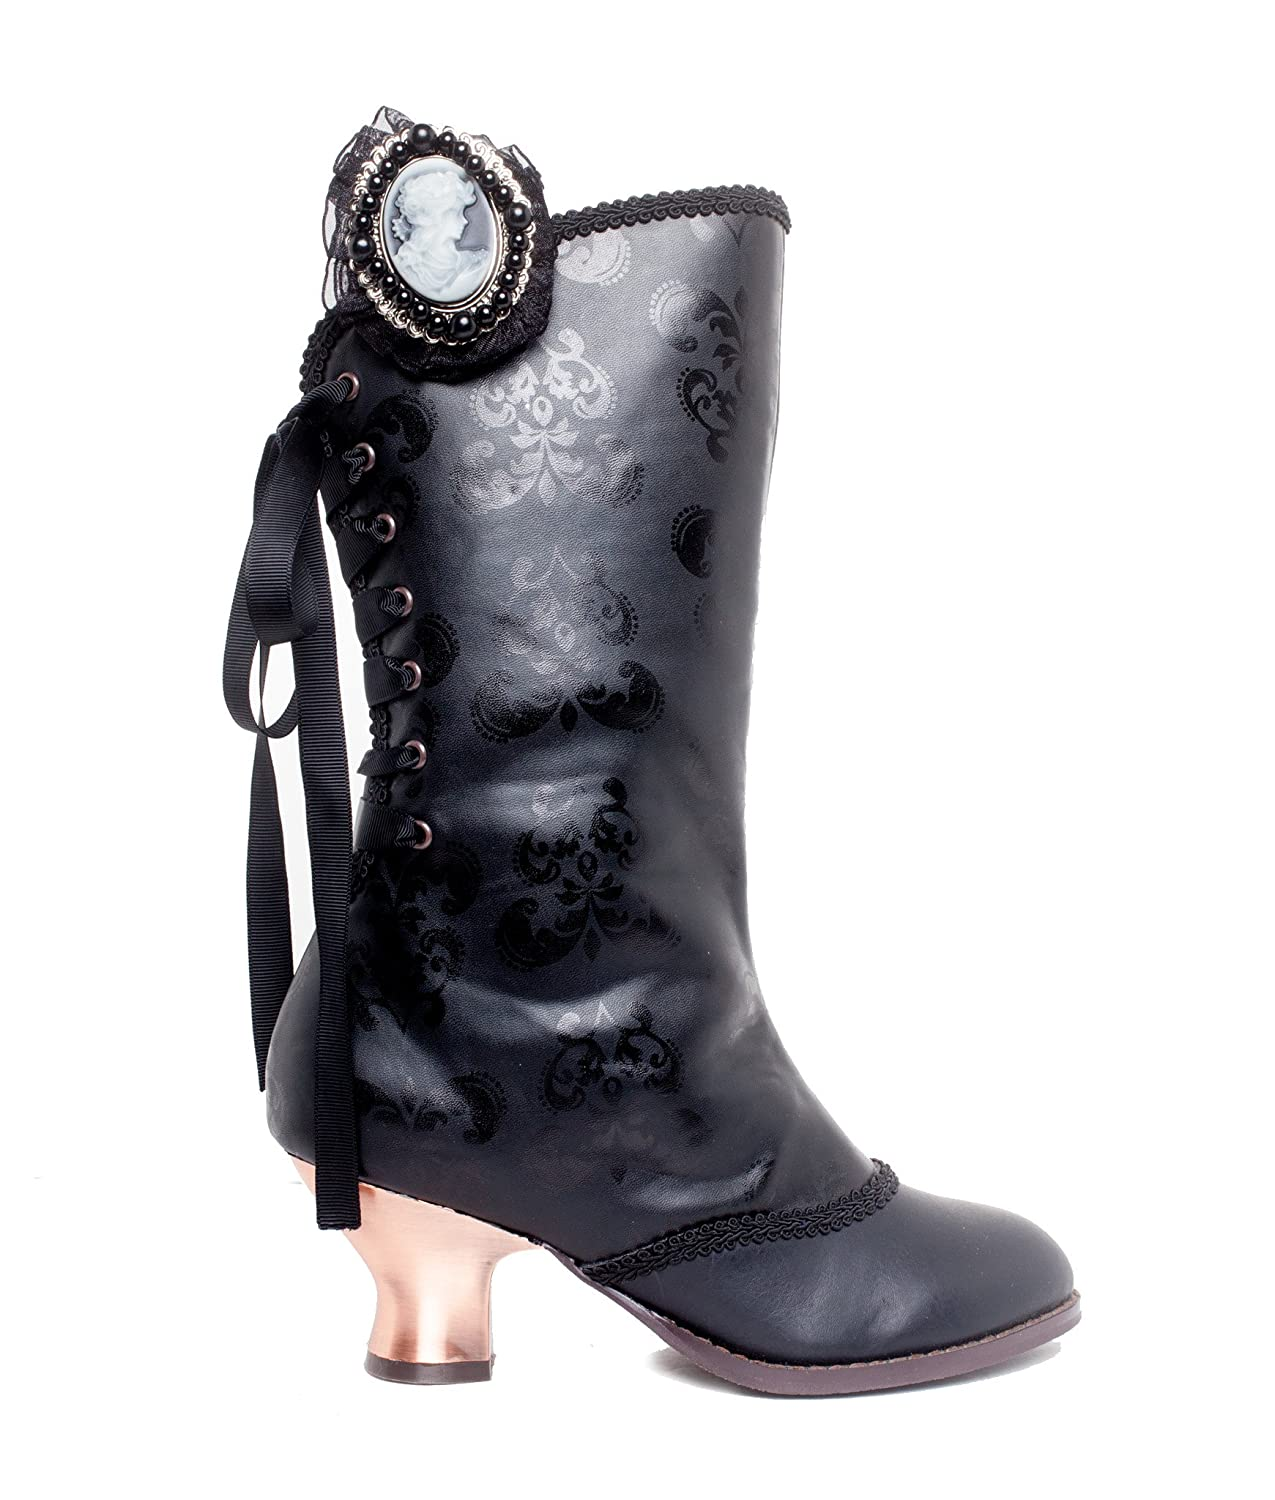 Clara Victorian Print Black Lace-Up Back Bronze Heel Ankle Boots with Detachable Cameo Pin - DeluxeAdultCostumes.com